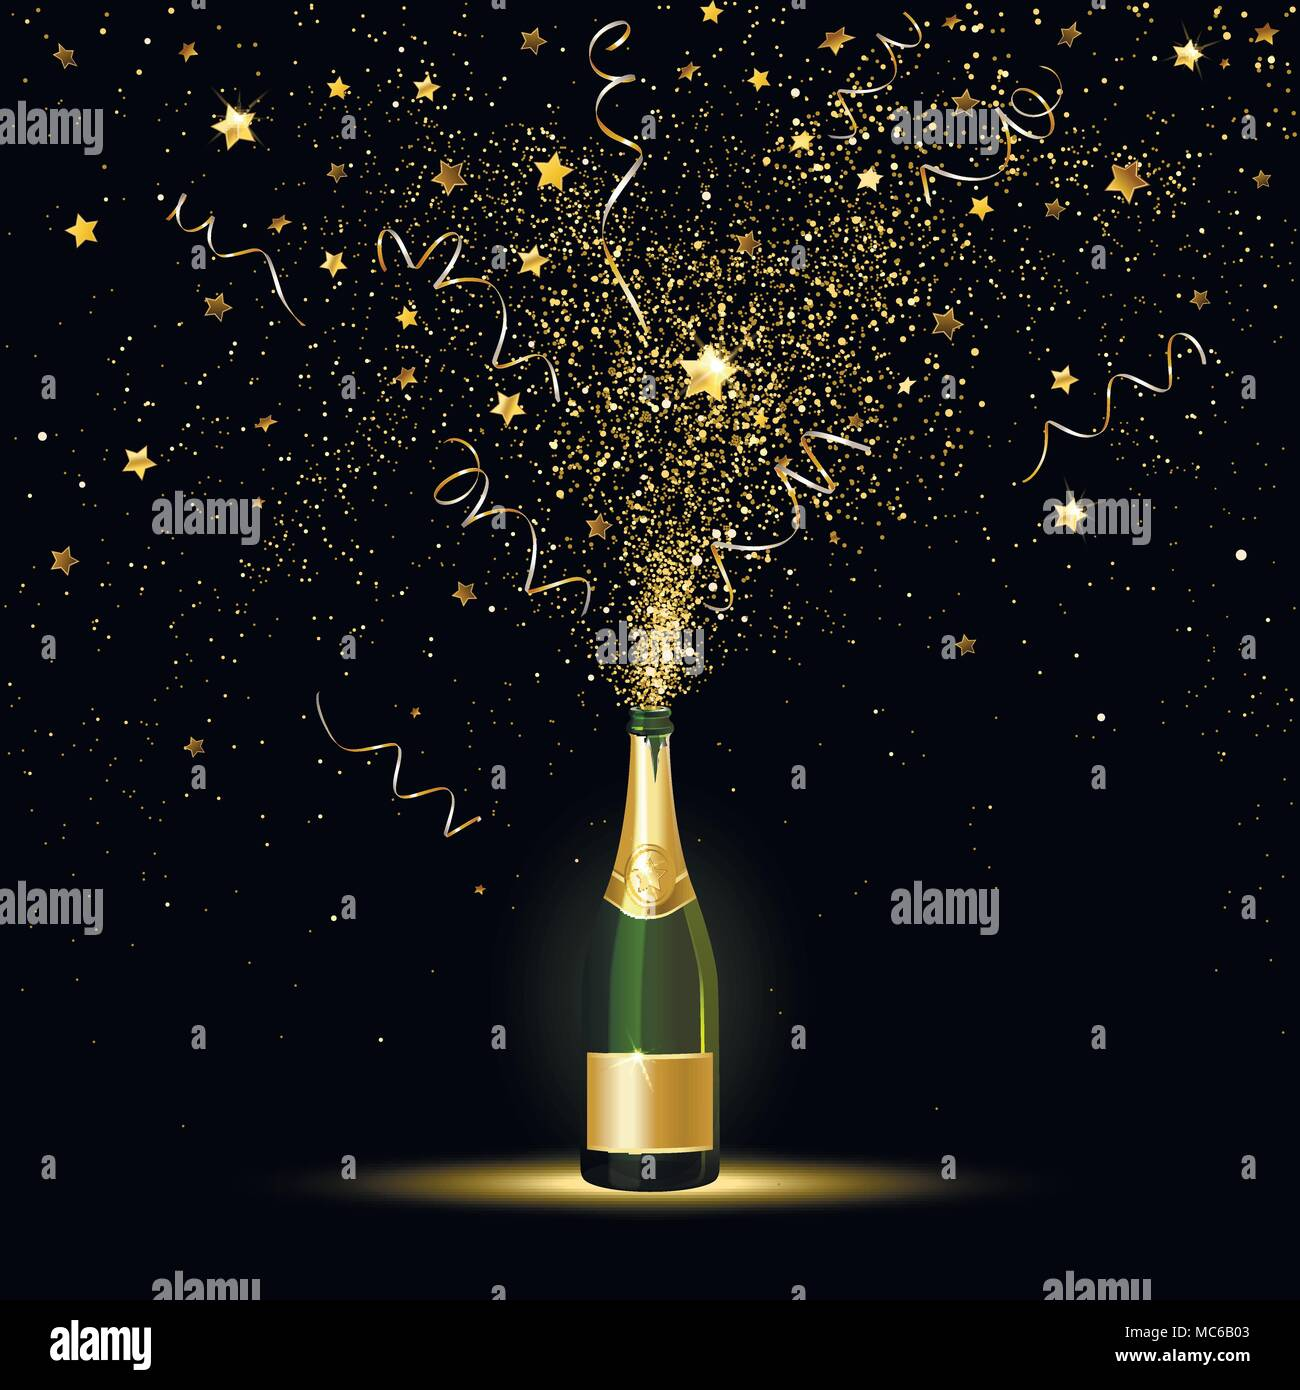 Champagne splashes of gold confetti on a black background - Stock Image